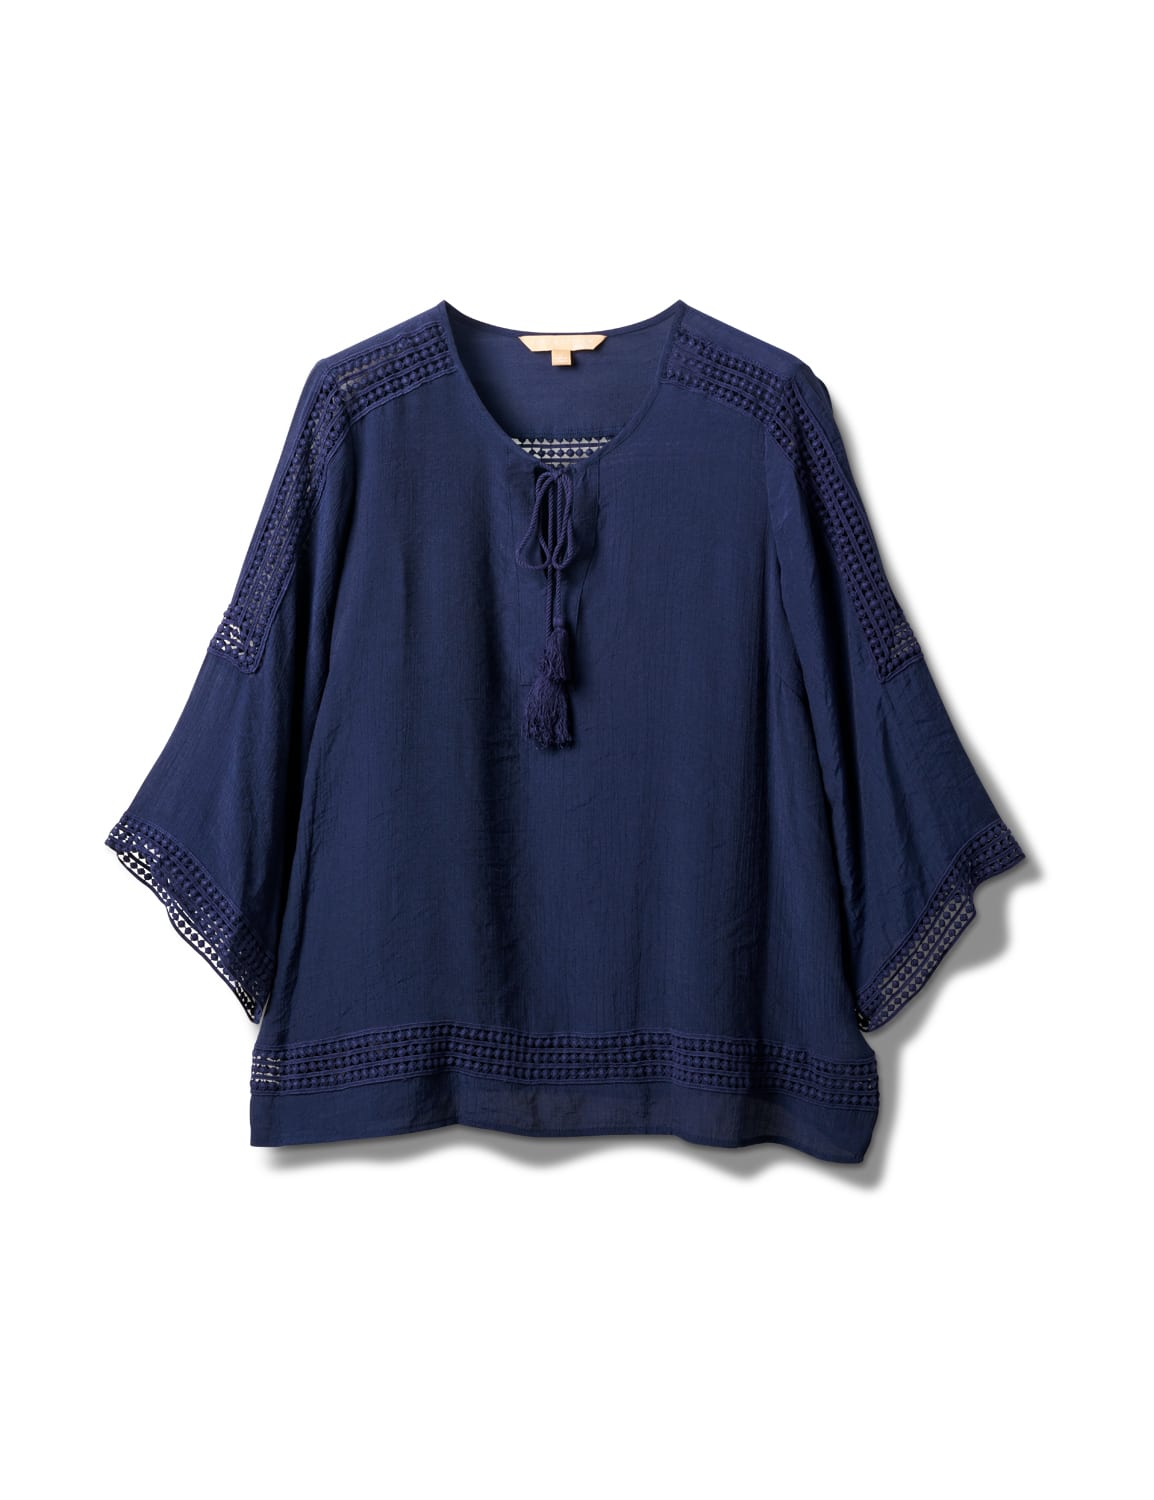 Crochet Trim Tassel Textured Blouse - Navy Blazer - Front